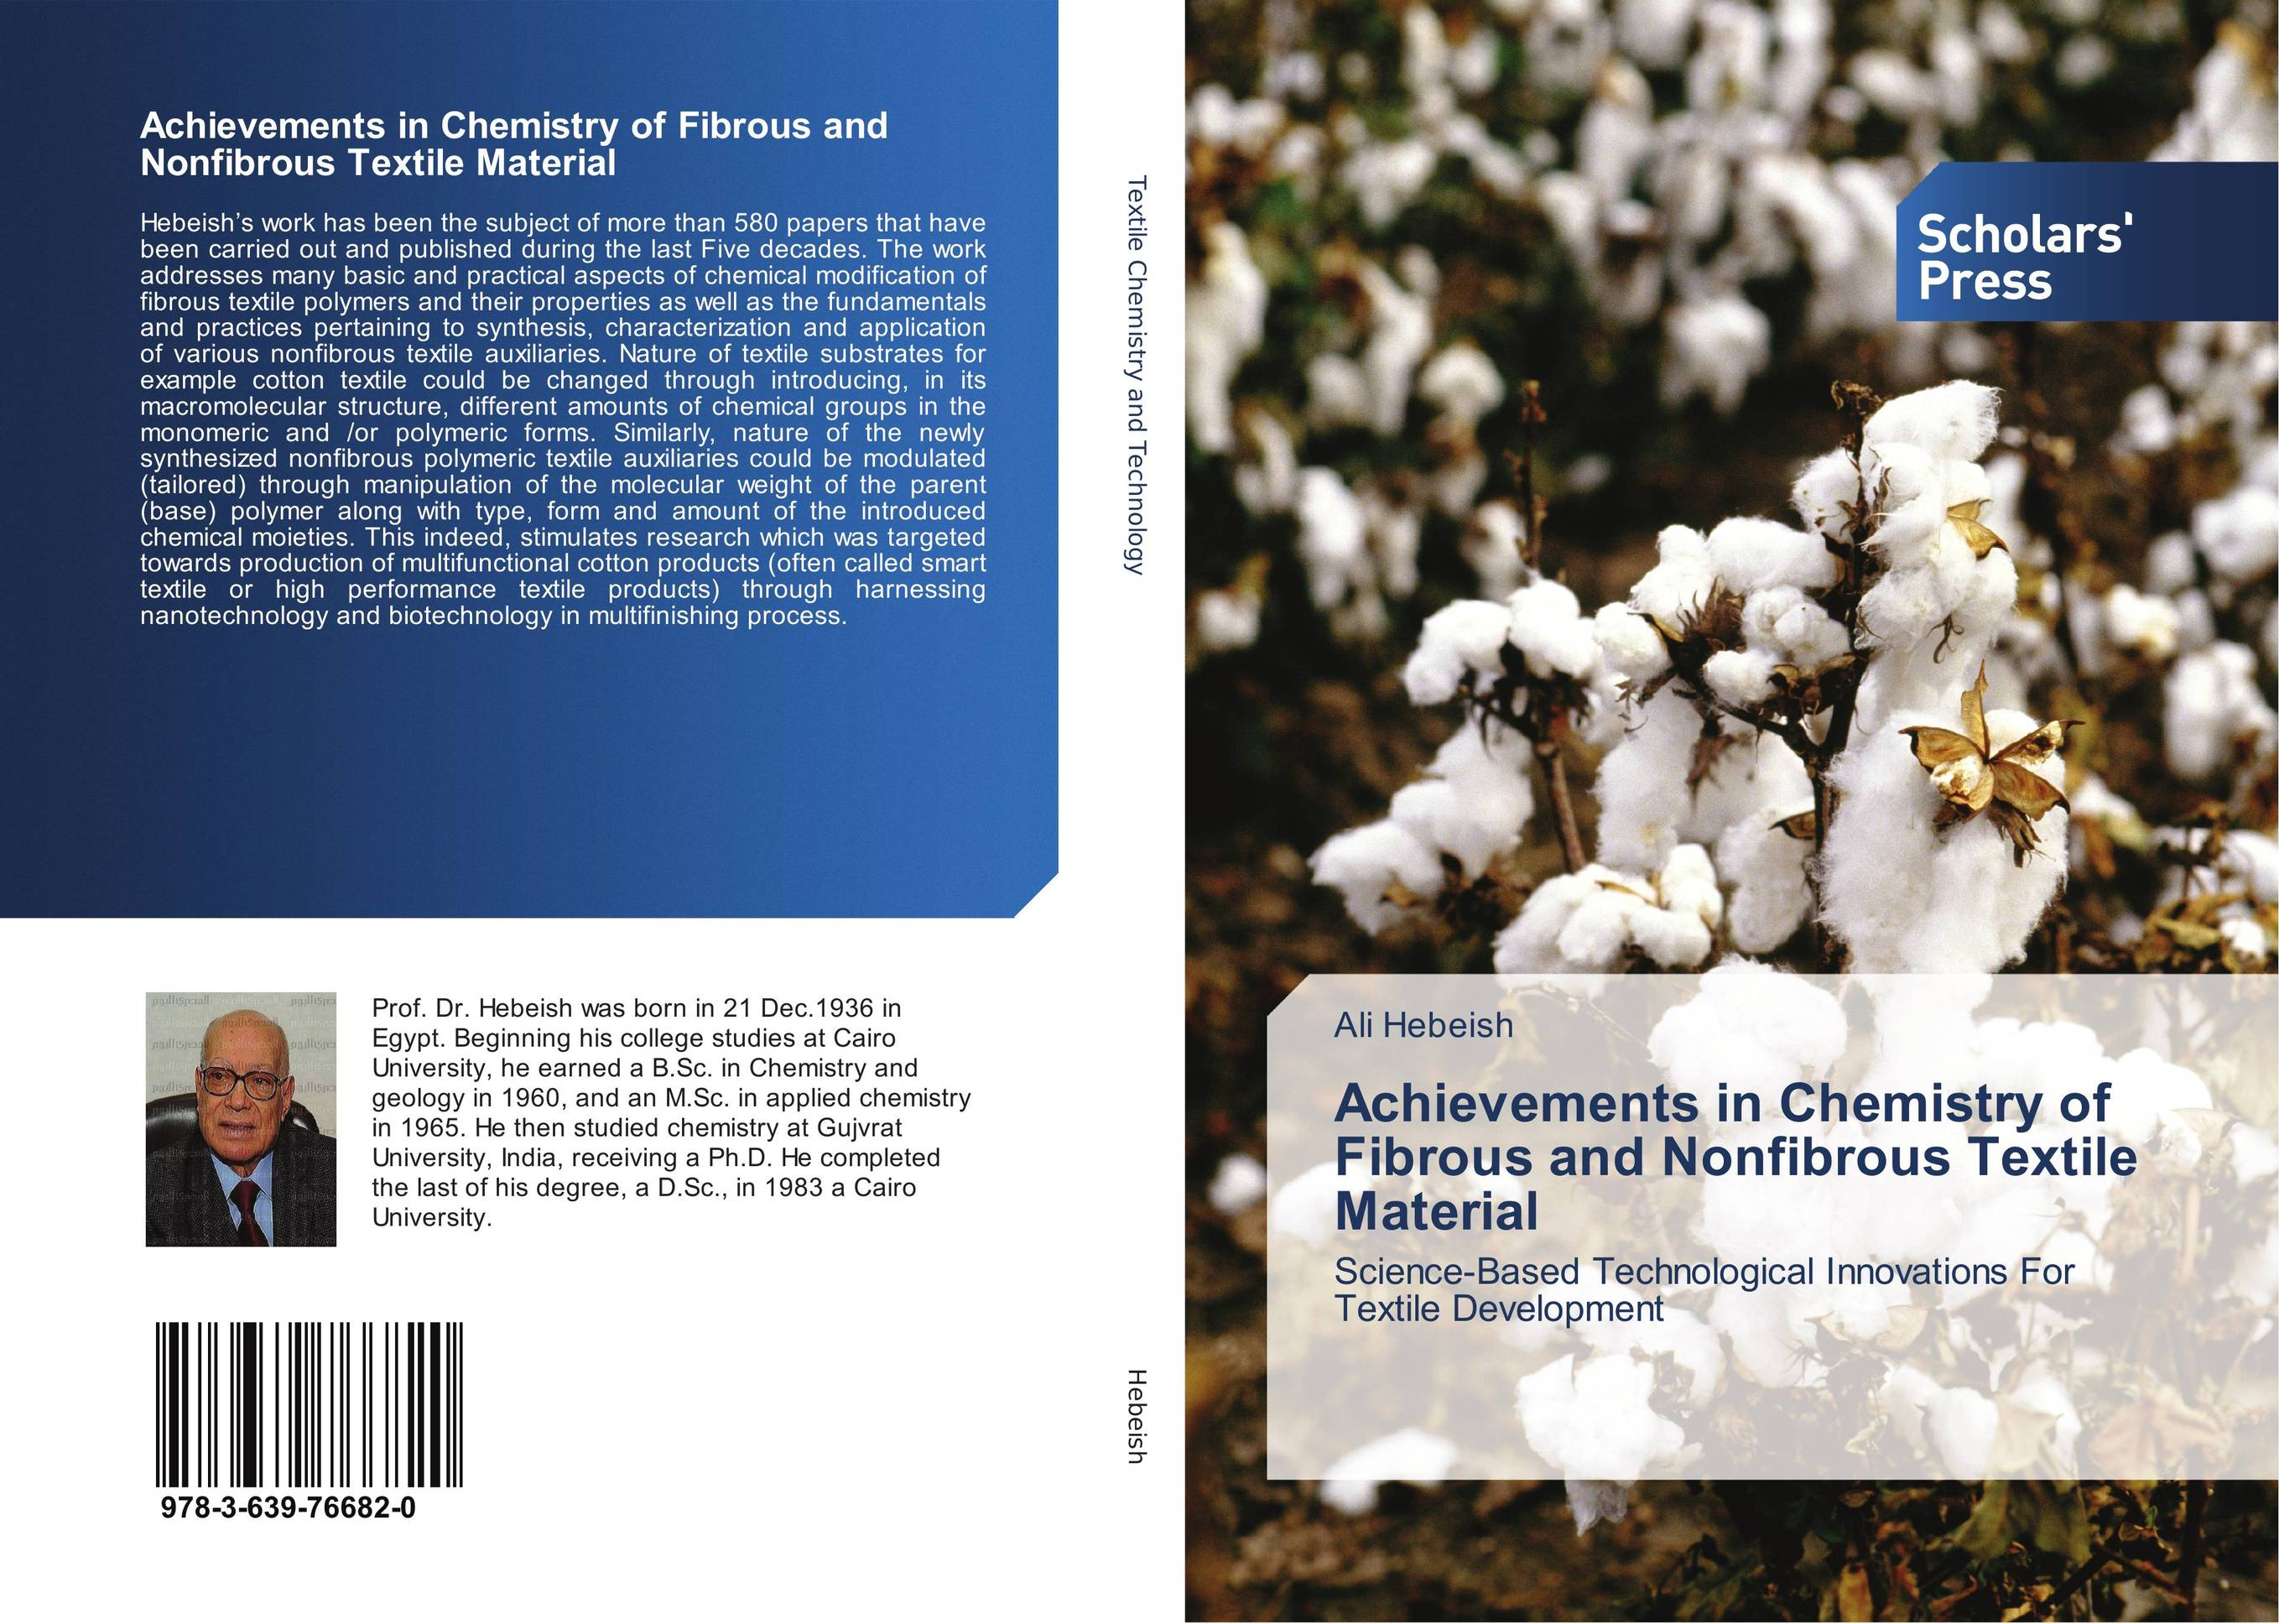 Achievements in Chemistry of Fibrous and Nonfibrous Textile Material м н милеева chemistry in questions and tests учебное пособие